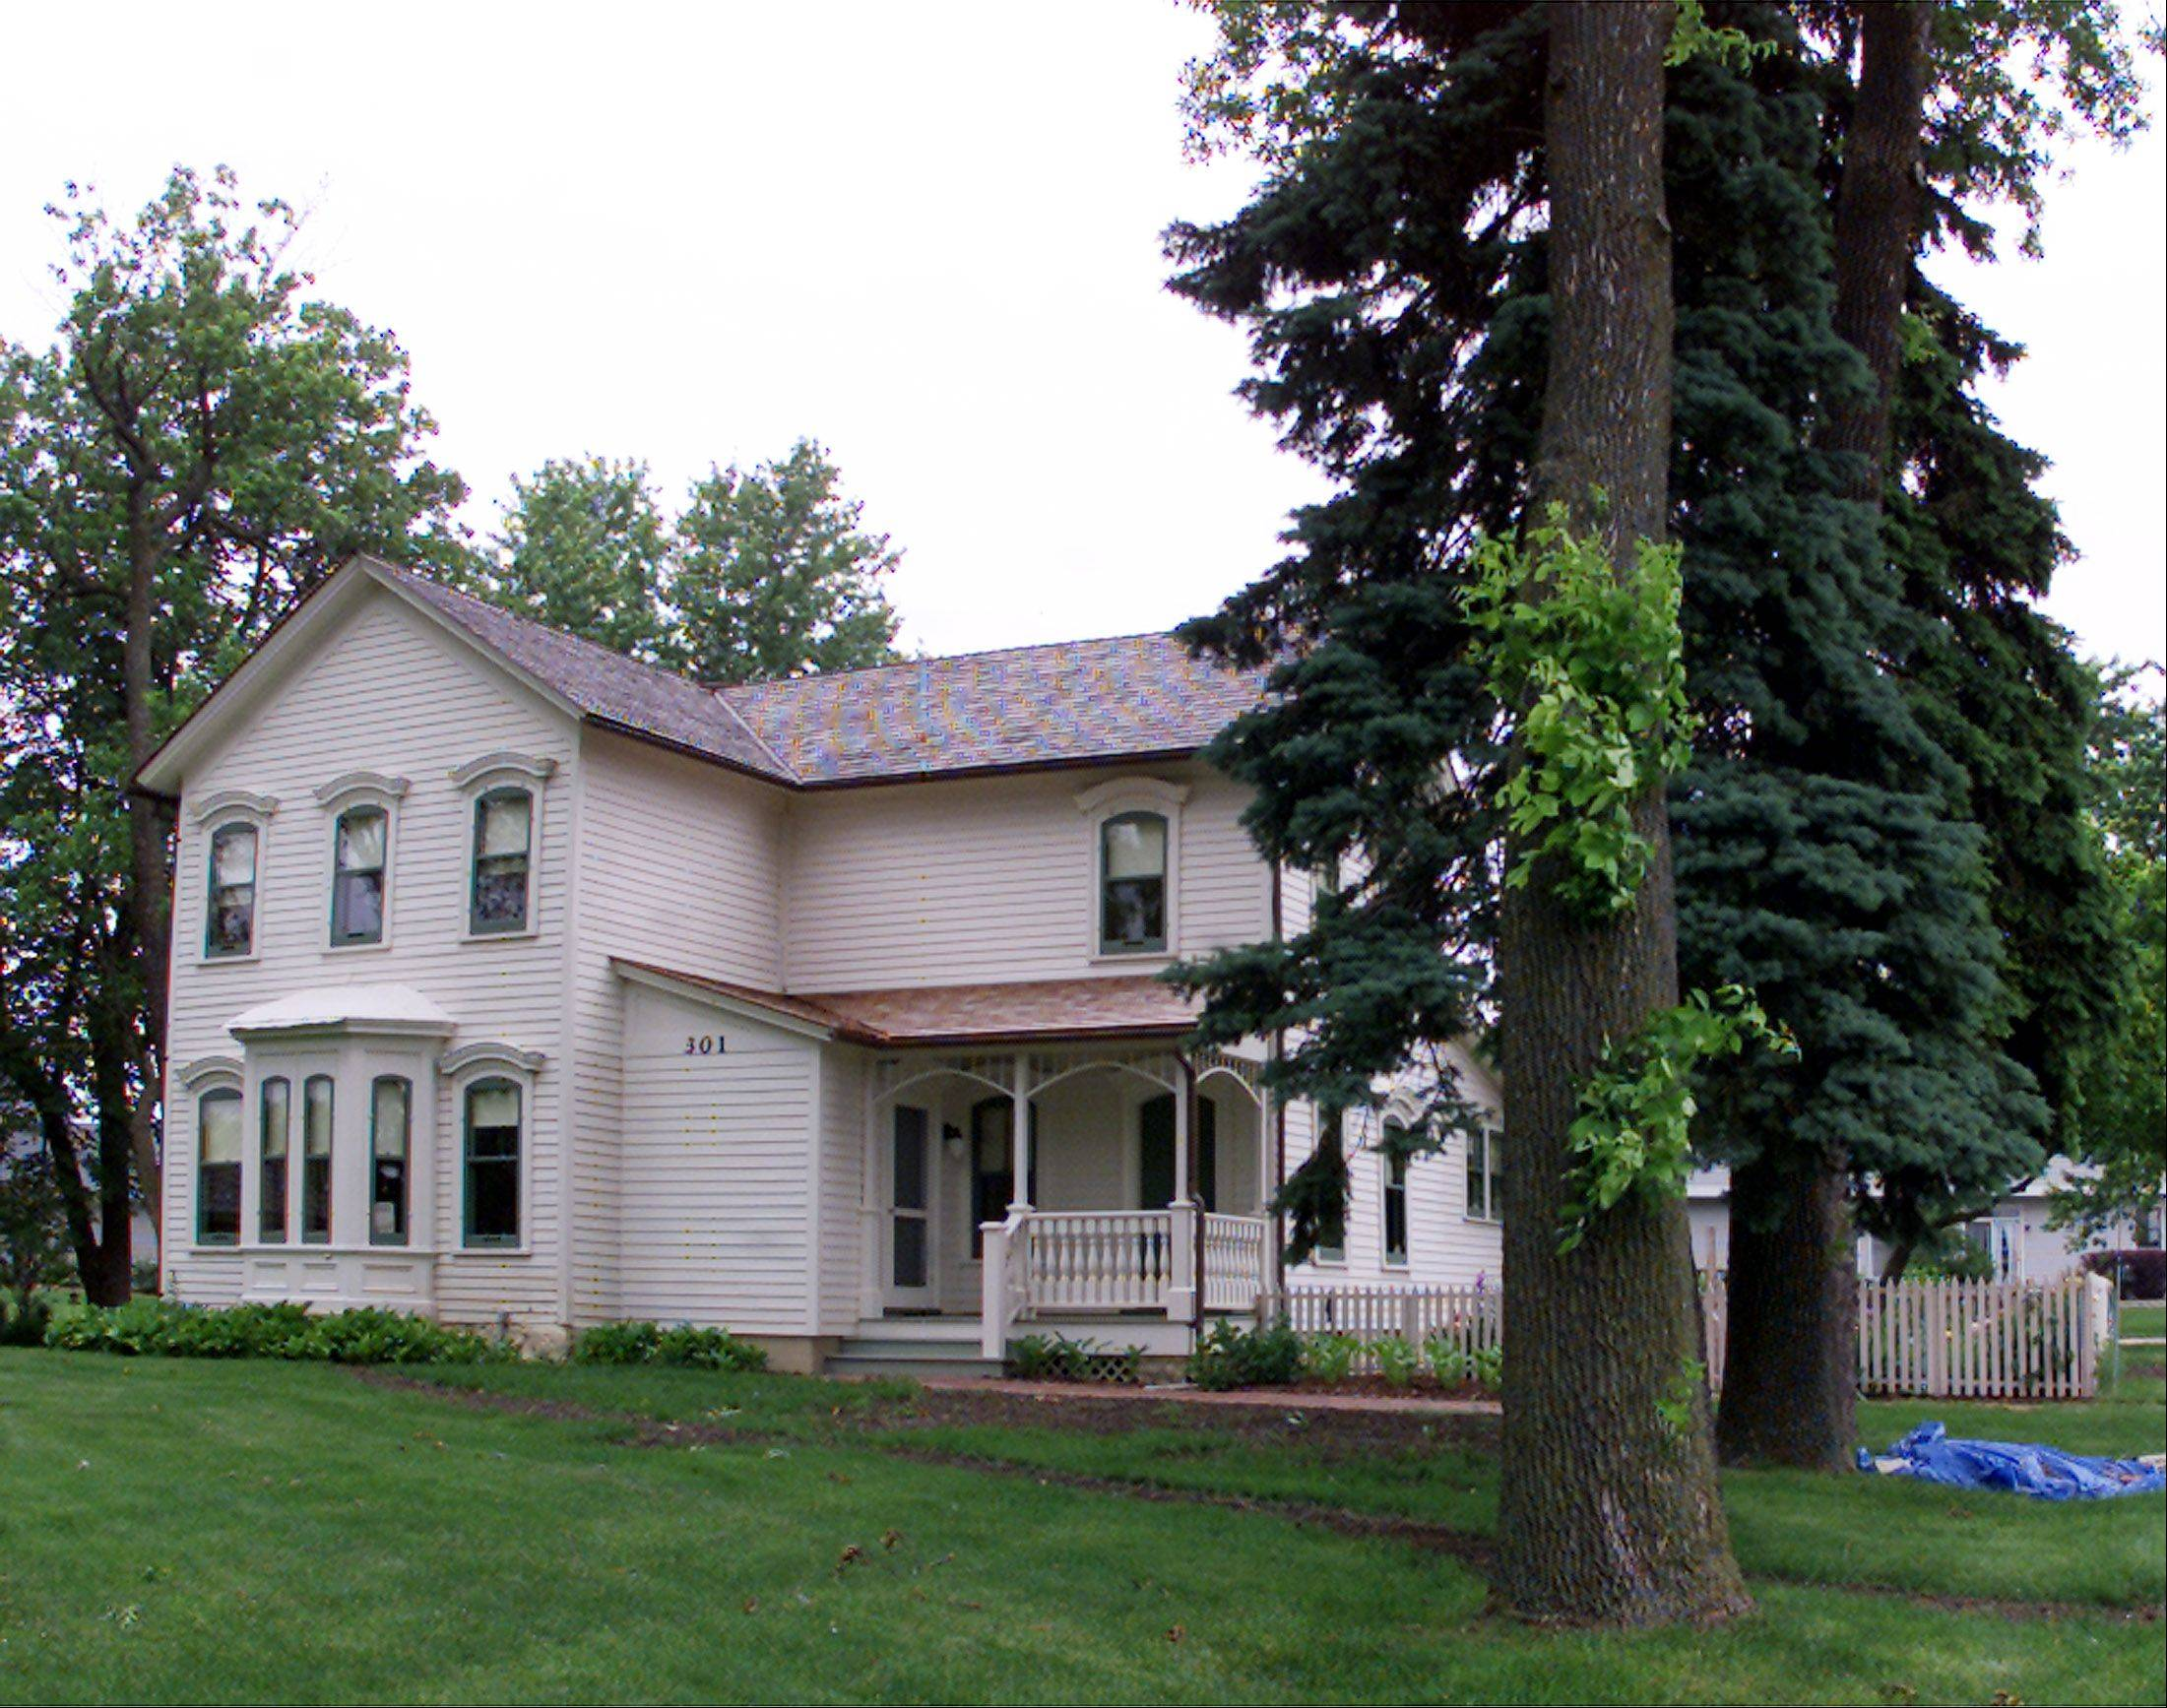 The Carol Stream Historical Society's annual Market Place on Saturday will feature tours of the historic farmhouse on Lies Road. .